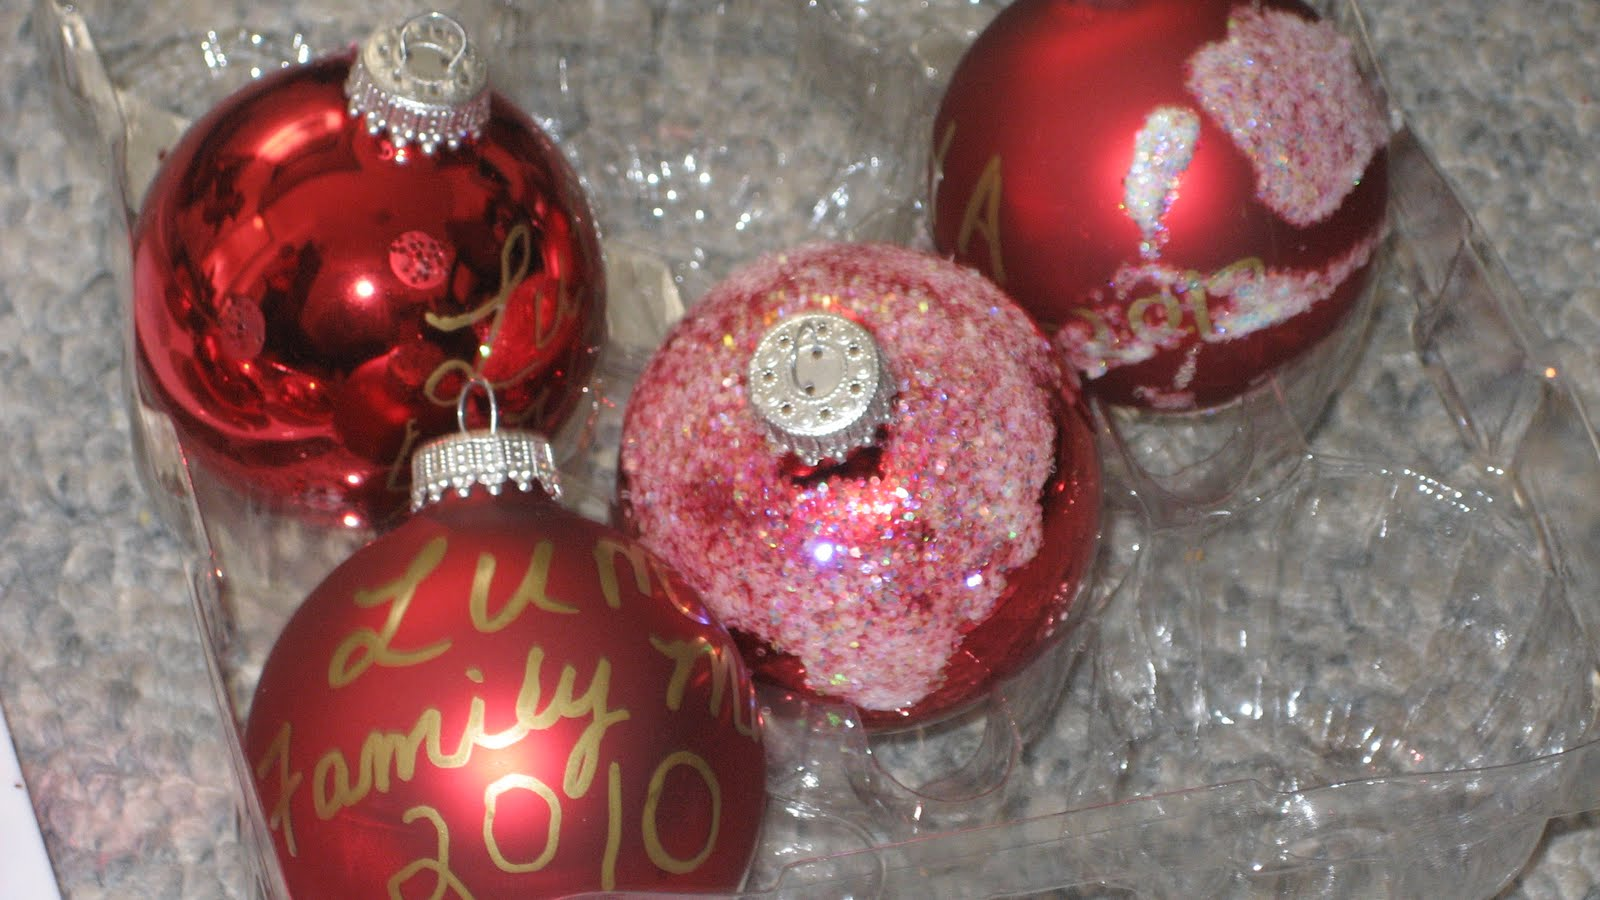 Glue for glass ornaments - We Decorated Some Glass Ornaments With Glue Glitter And A Paint Pen